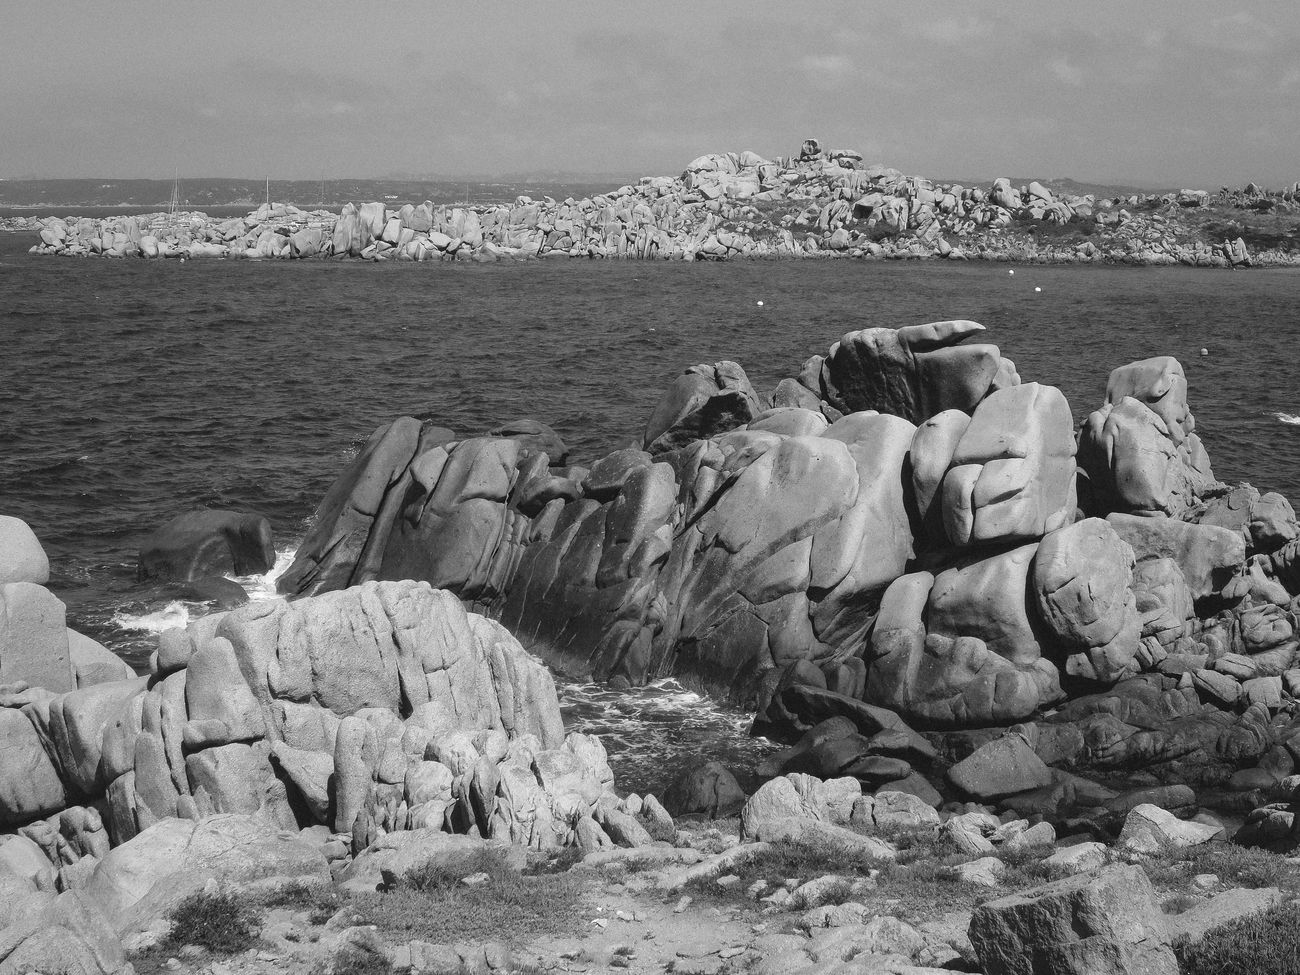 Beauty In Nature Blackandwhite Corse Day Ileslavezzi Landscape Large Group Of Animals Nature No People Outdoors Rock - Object Rockformation Sea Sky Water